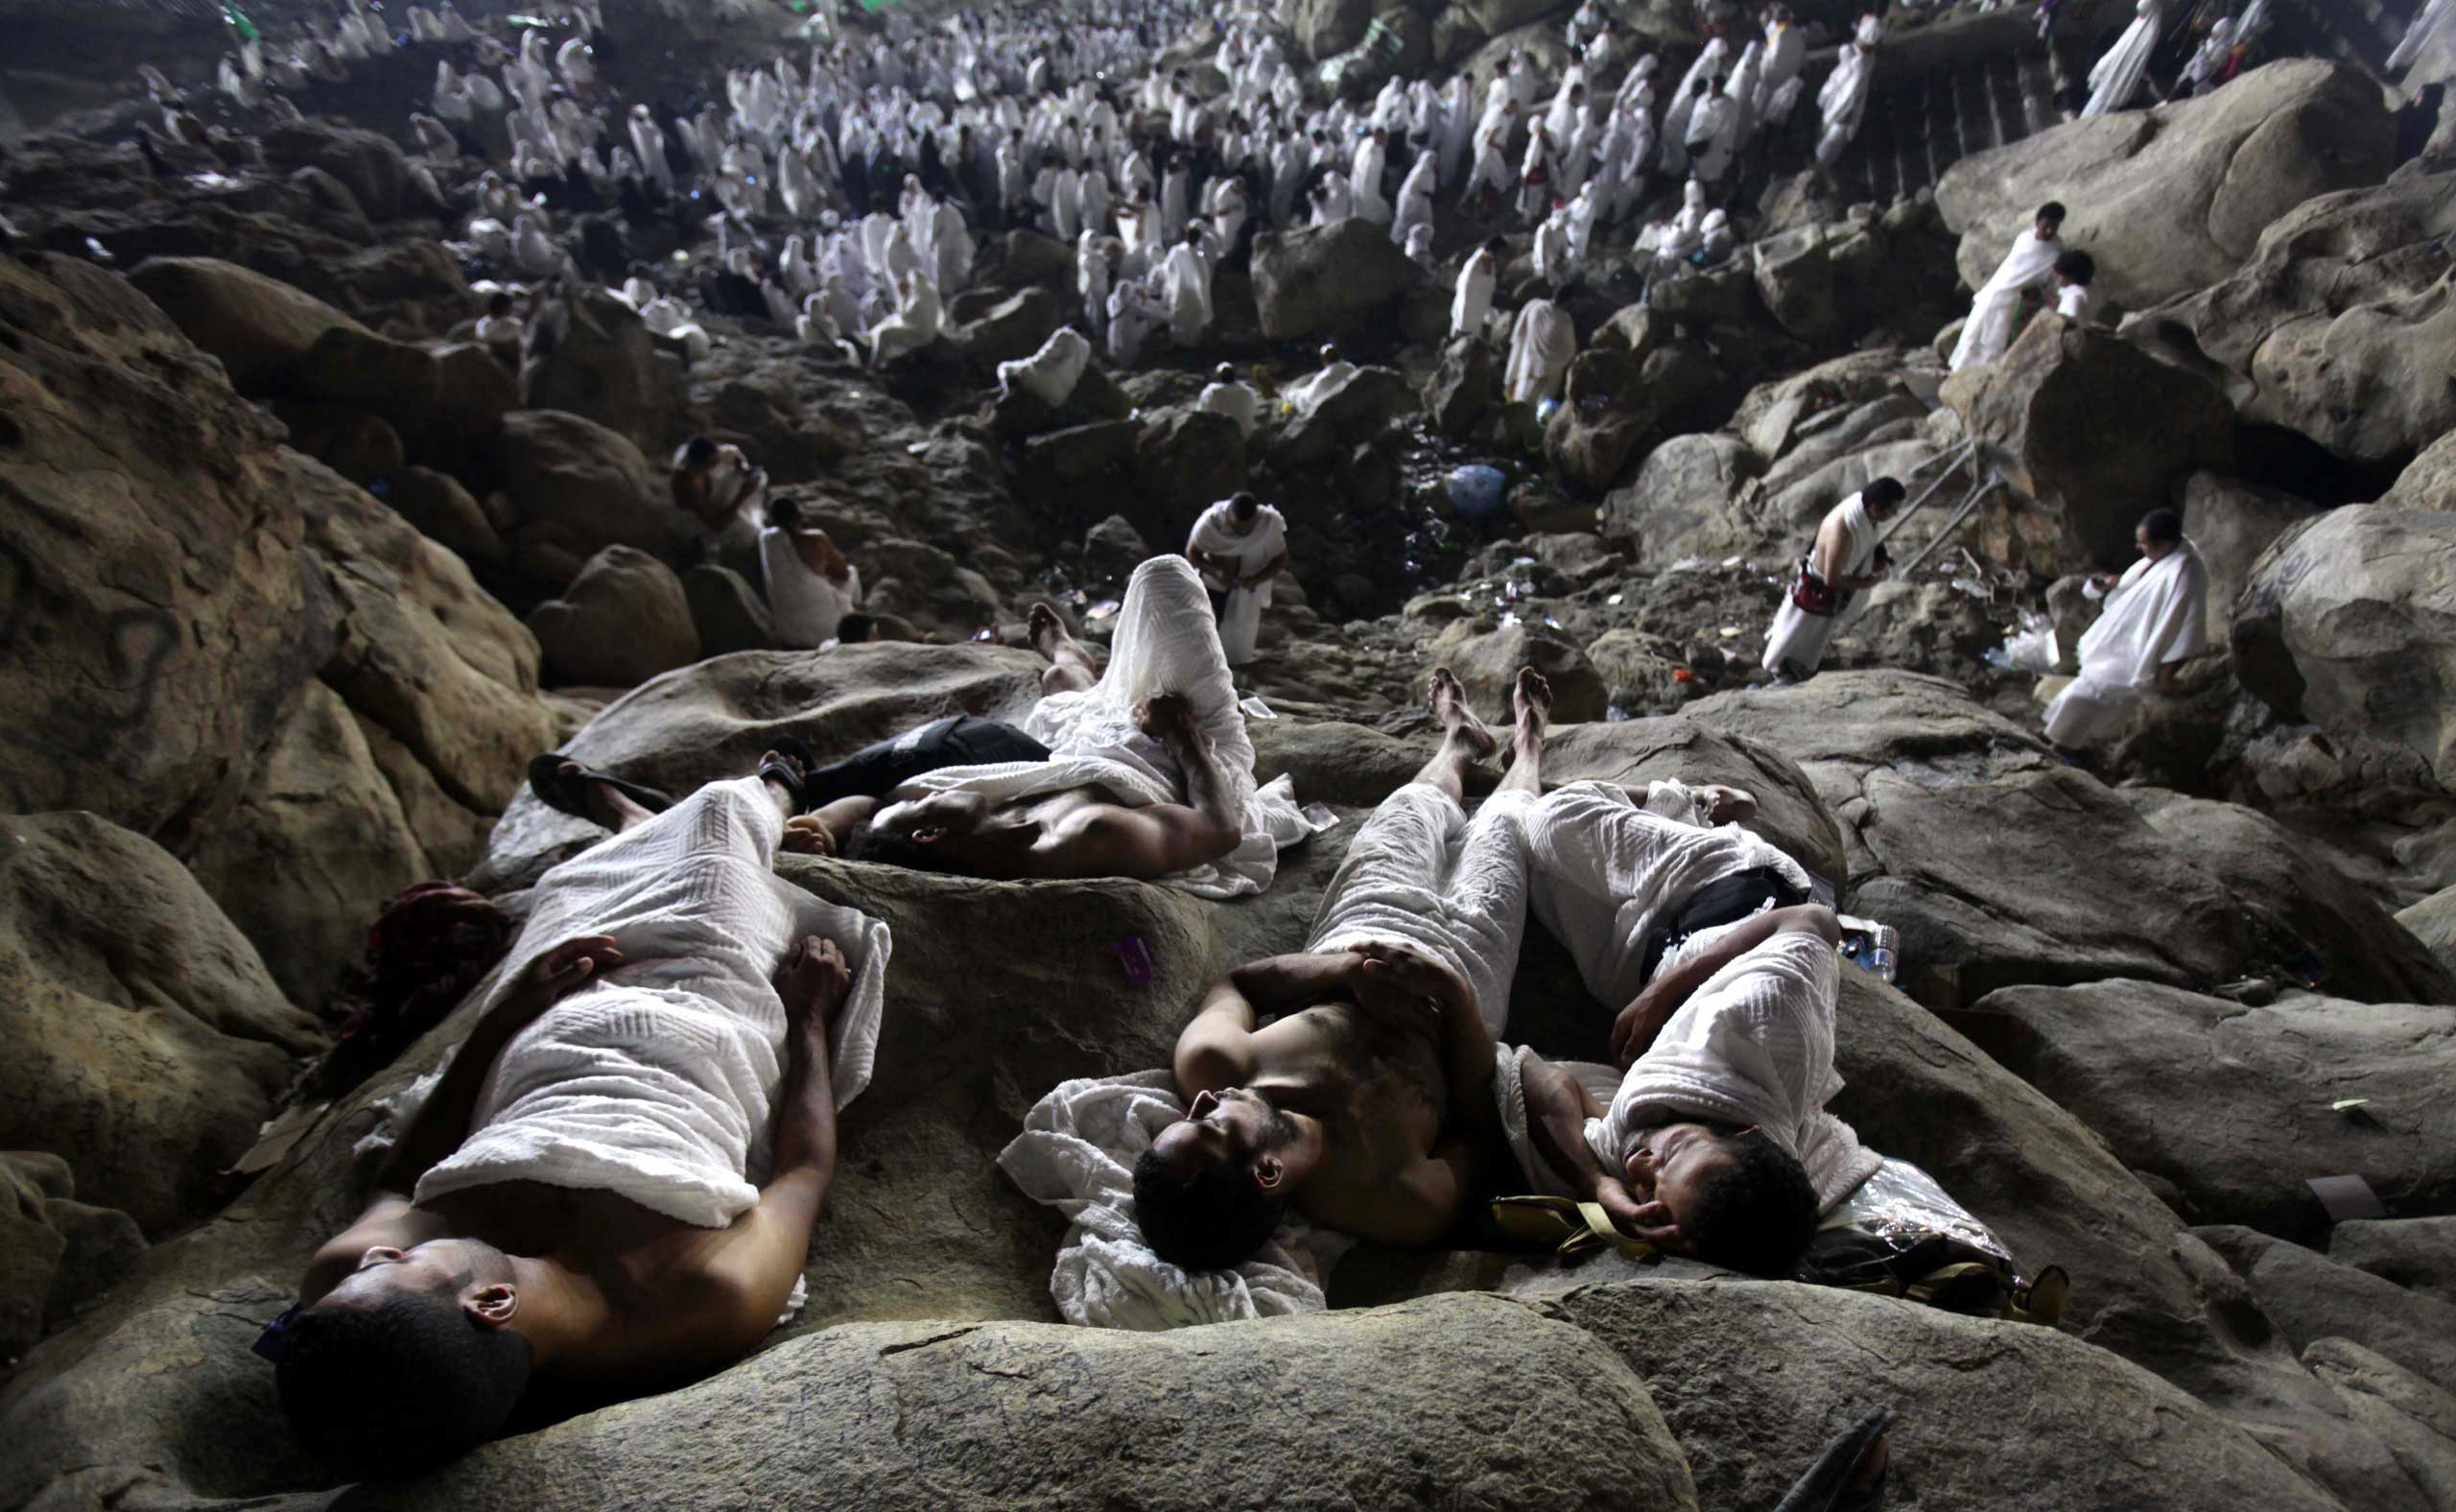 Oct. 3, 2014. Muslim pilgrims gather on Mount Arafat, near Mecca, as they take part in one of the Hajj rituals.